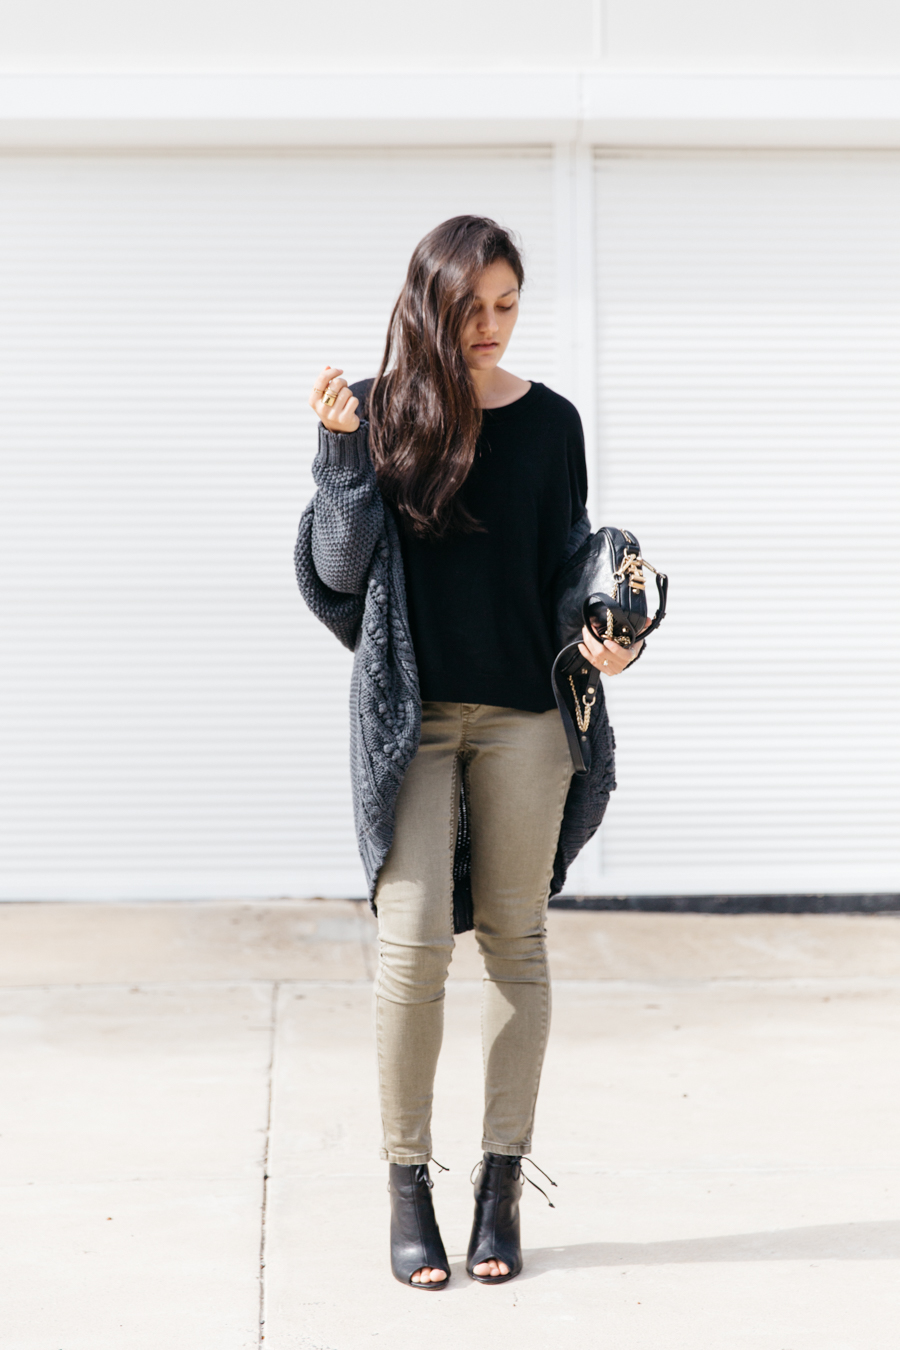 Khaki jeggings & chunky knit cardigan outfit.